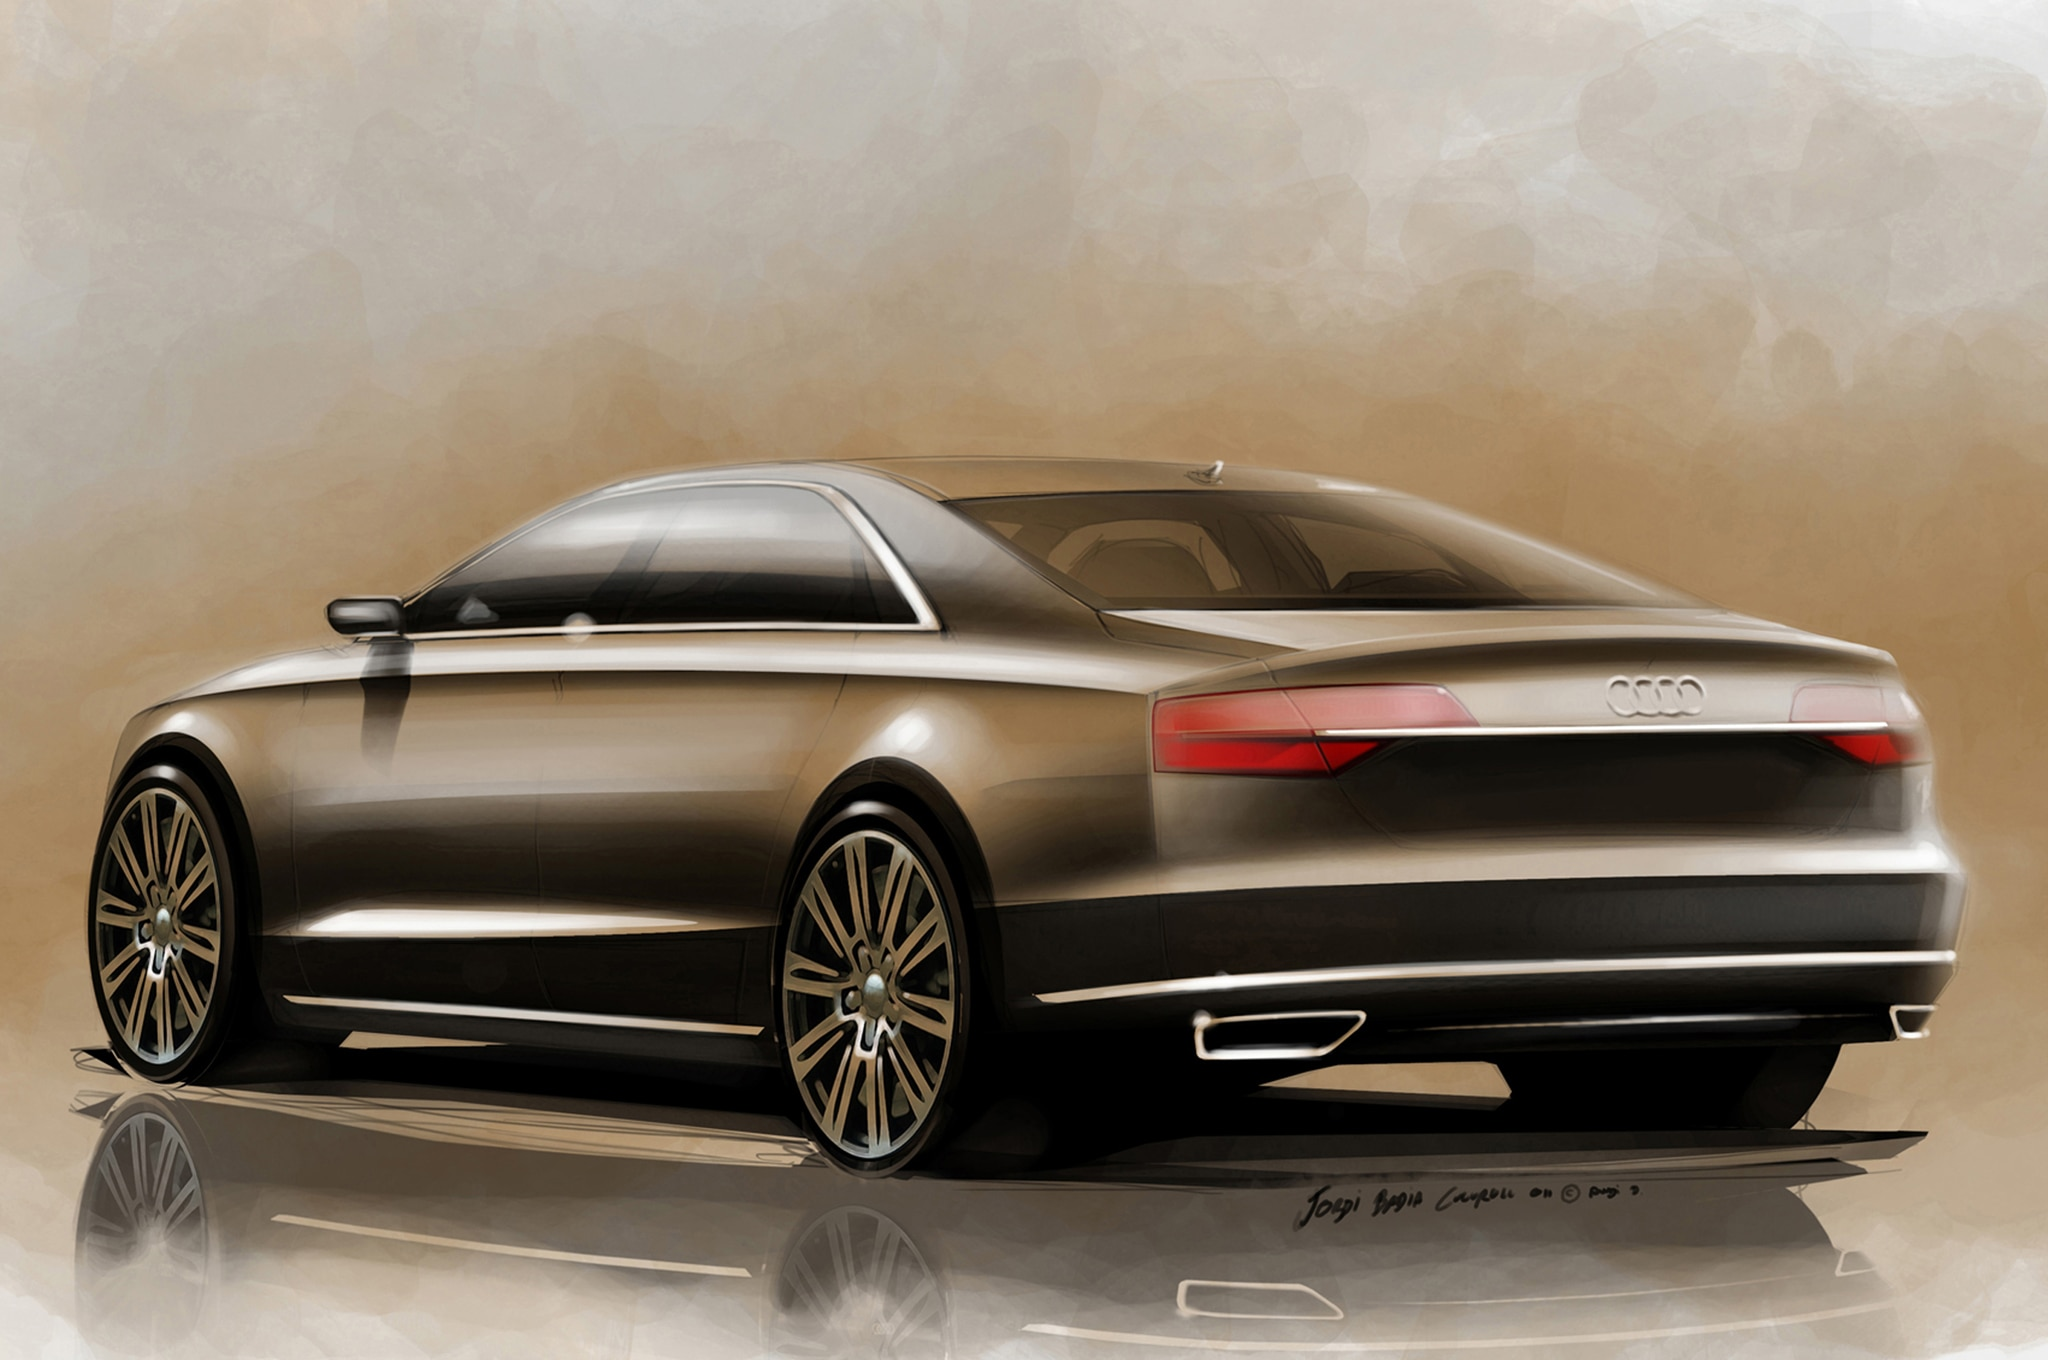 2015 Audi A8 Left Rear Angle Sketch Color1